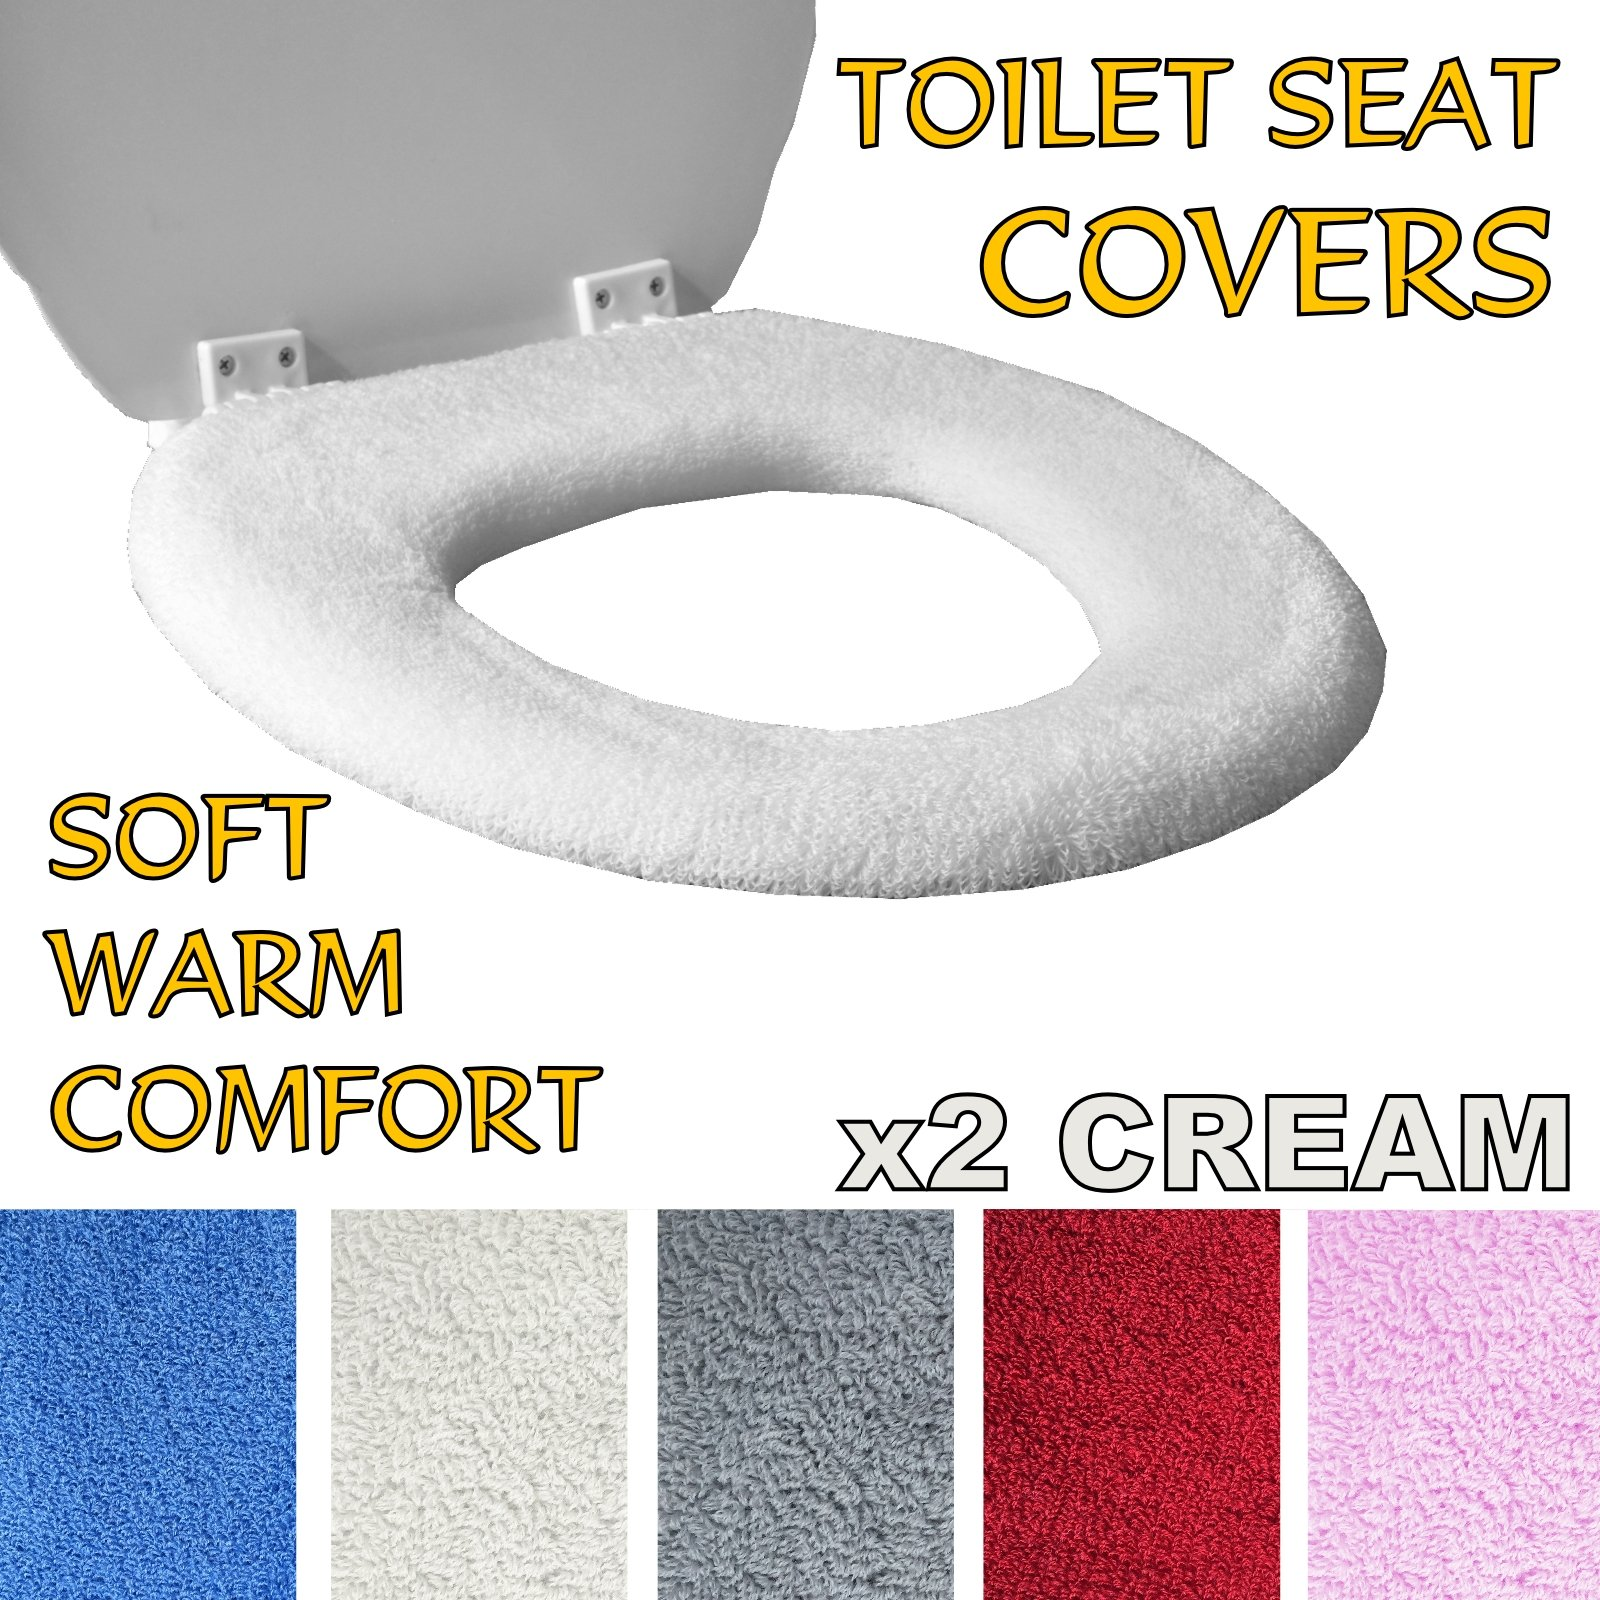 Toilet Seat Cover Mat With Soft /& Comfy//Soft Warm Fleece For Bathroom 2 Pack Blue